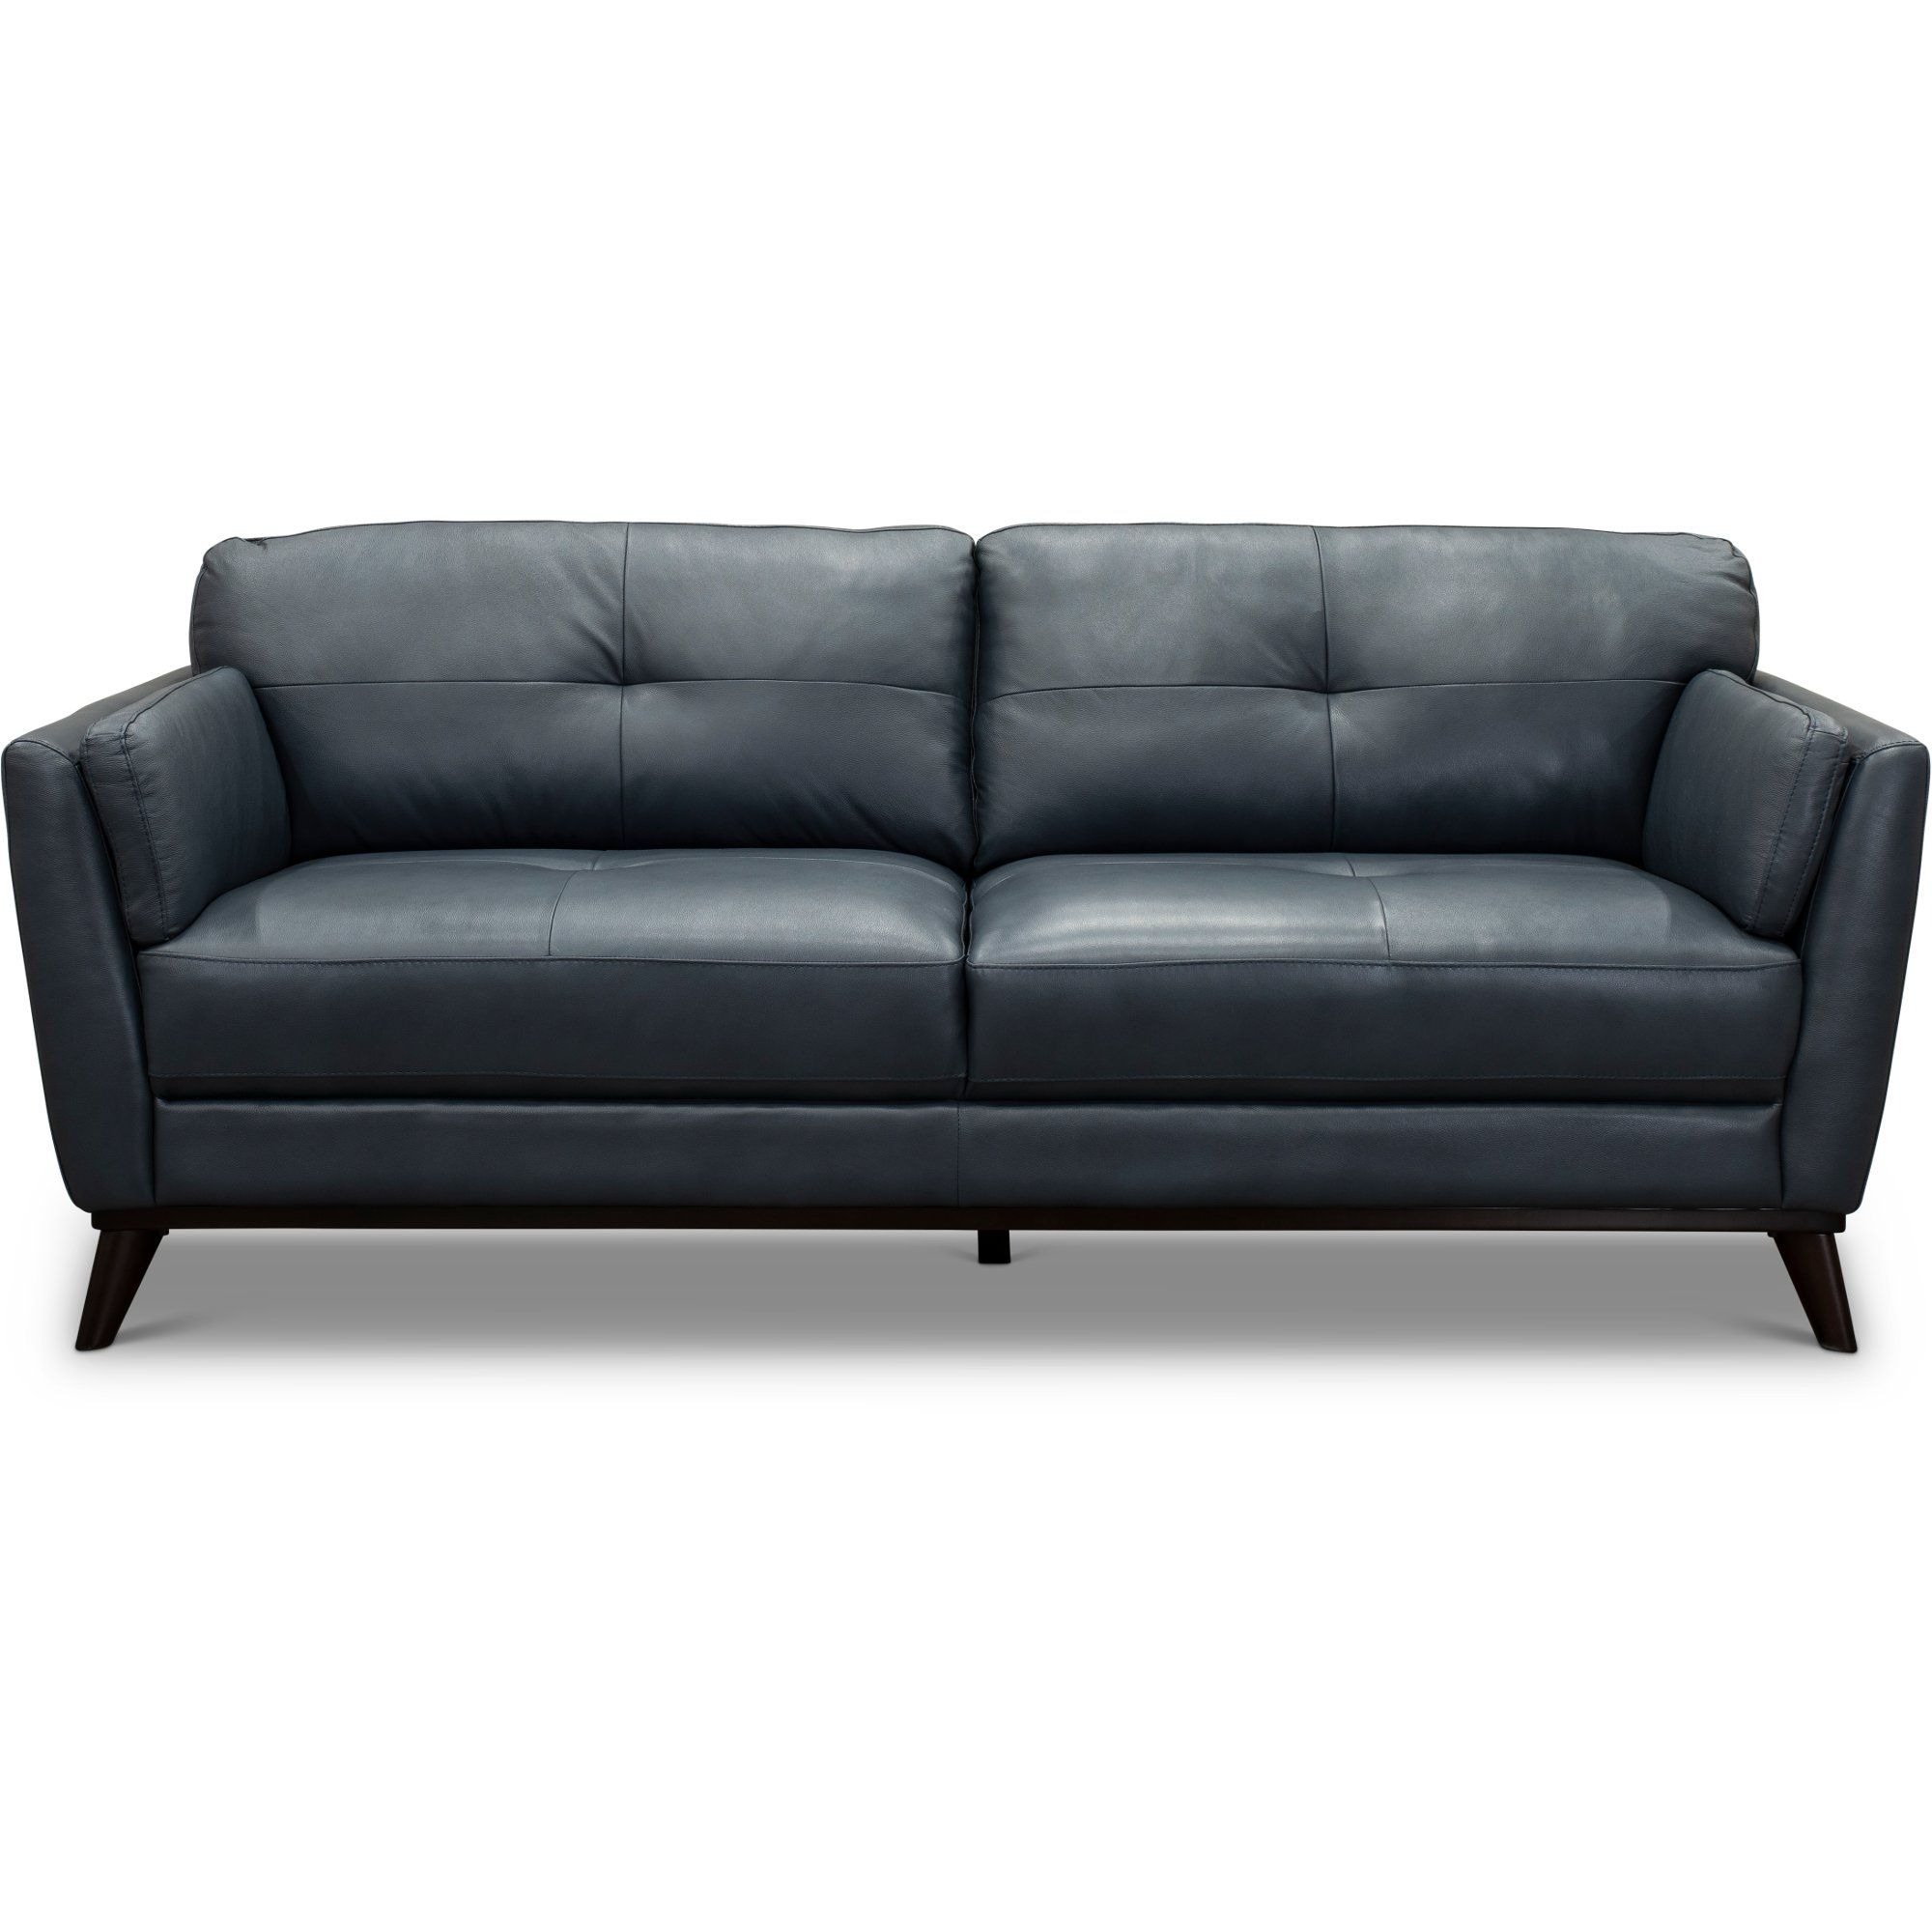 Modern Dark Blue Leather Sofa Warsaw Rc Willey Furniture Store In 2020 Blue Leather Sofa Leather Sofa Modern Leather Sofa